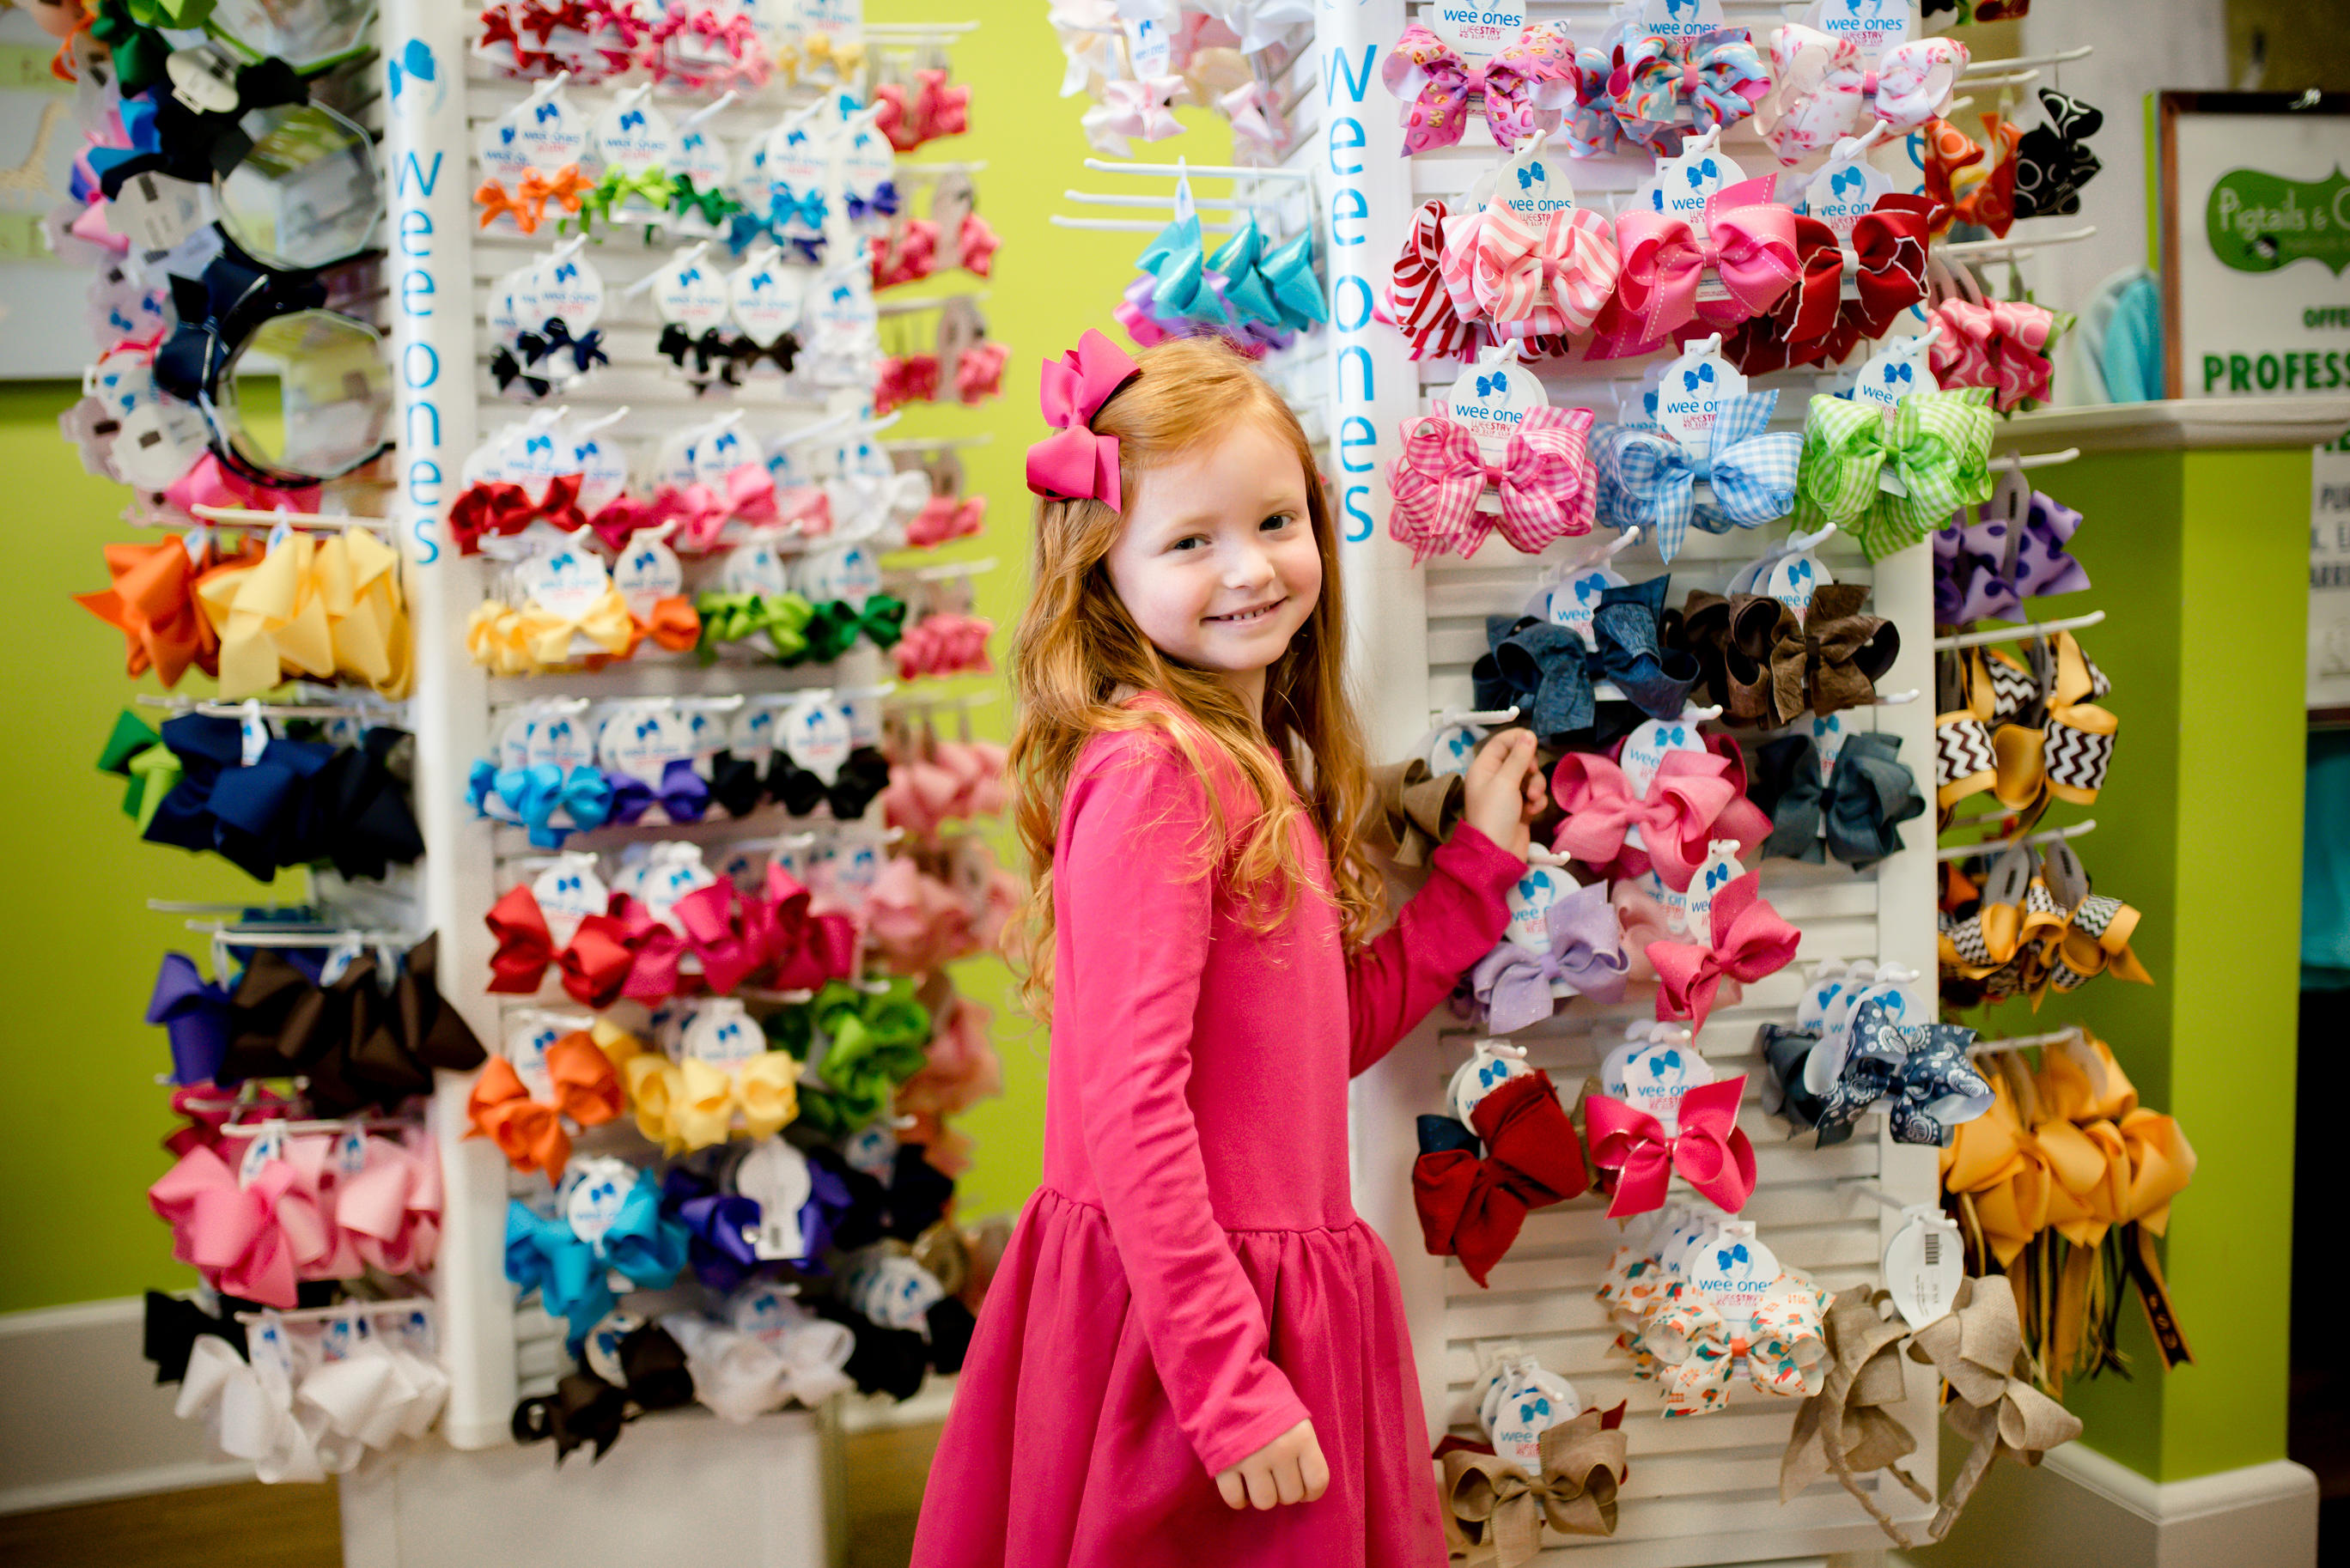 Pigtails Amp Crewcuts Haircuts For Kids Coupons Near Me In